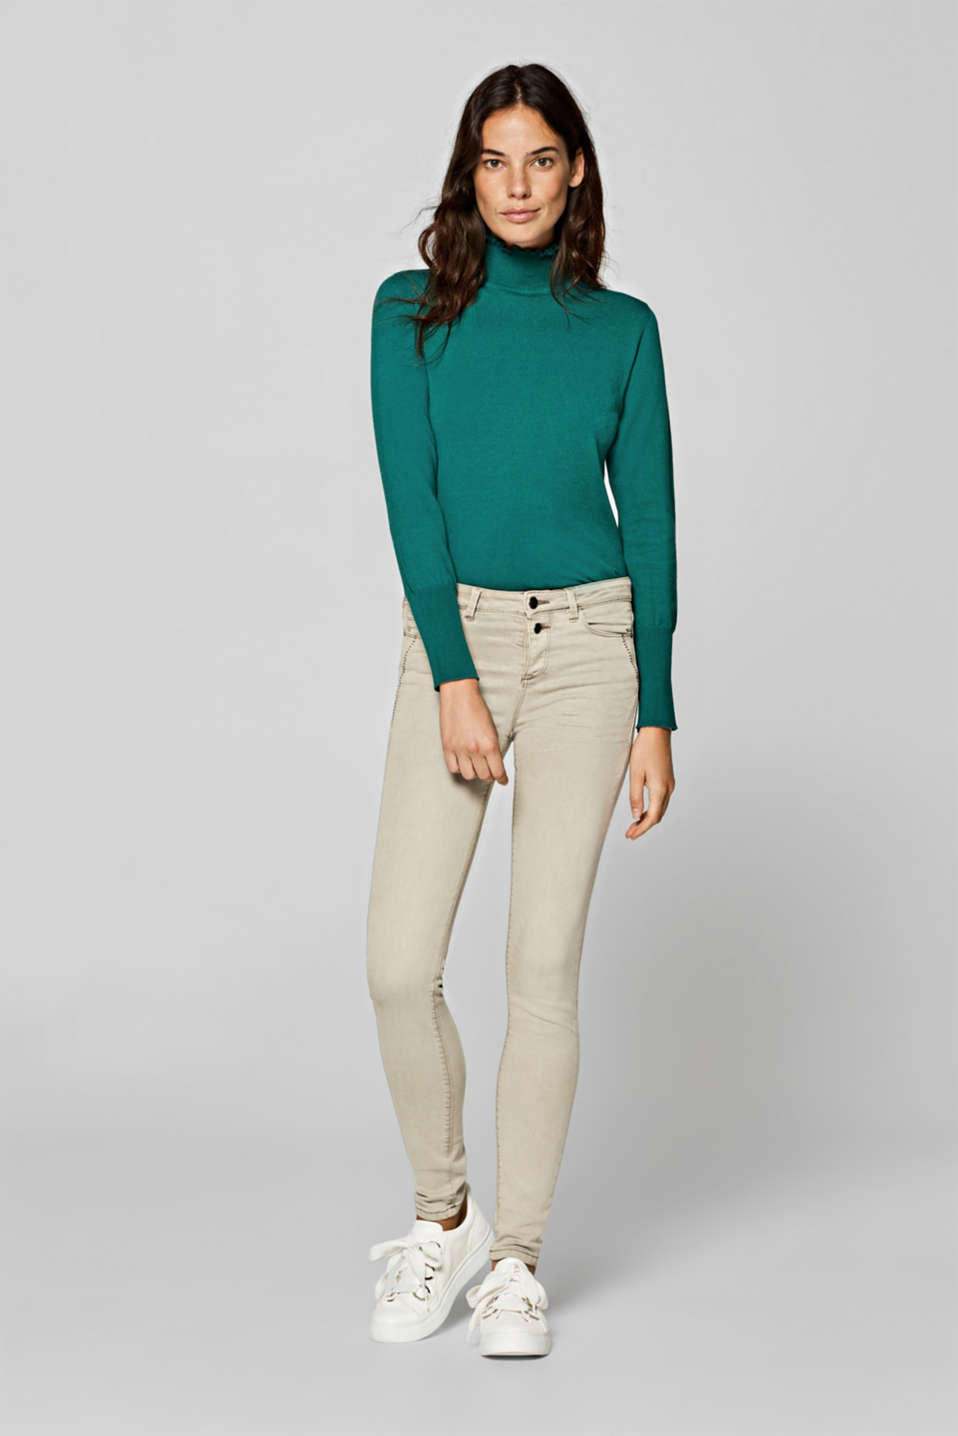 Esprit - Stretch trousers with a button placket, recycled